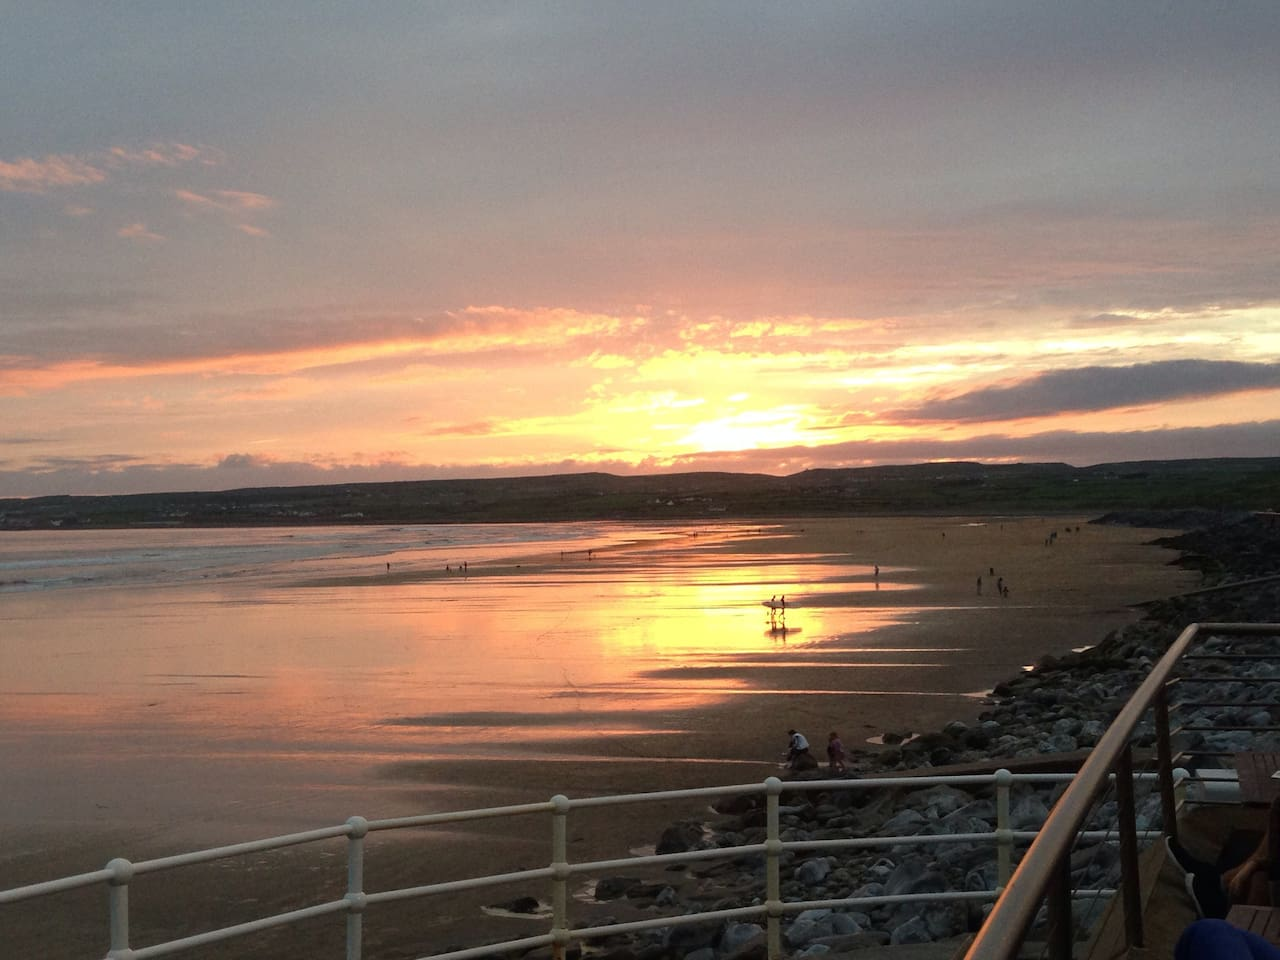 Sunset on liscannor bay - Lahinch